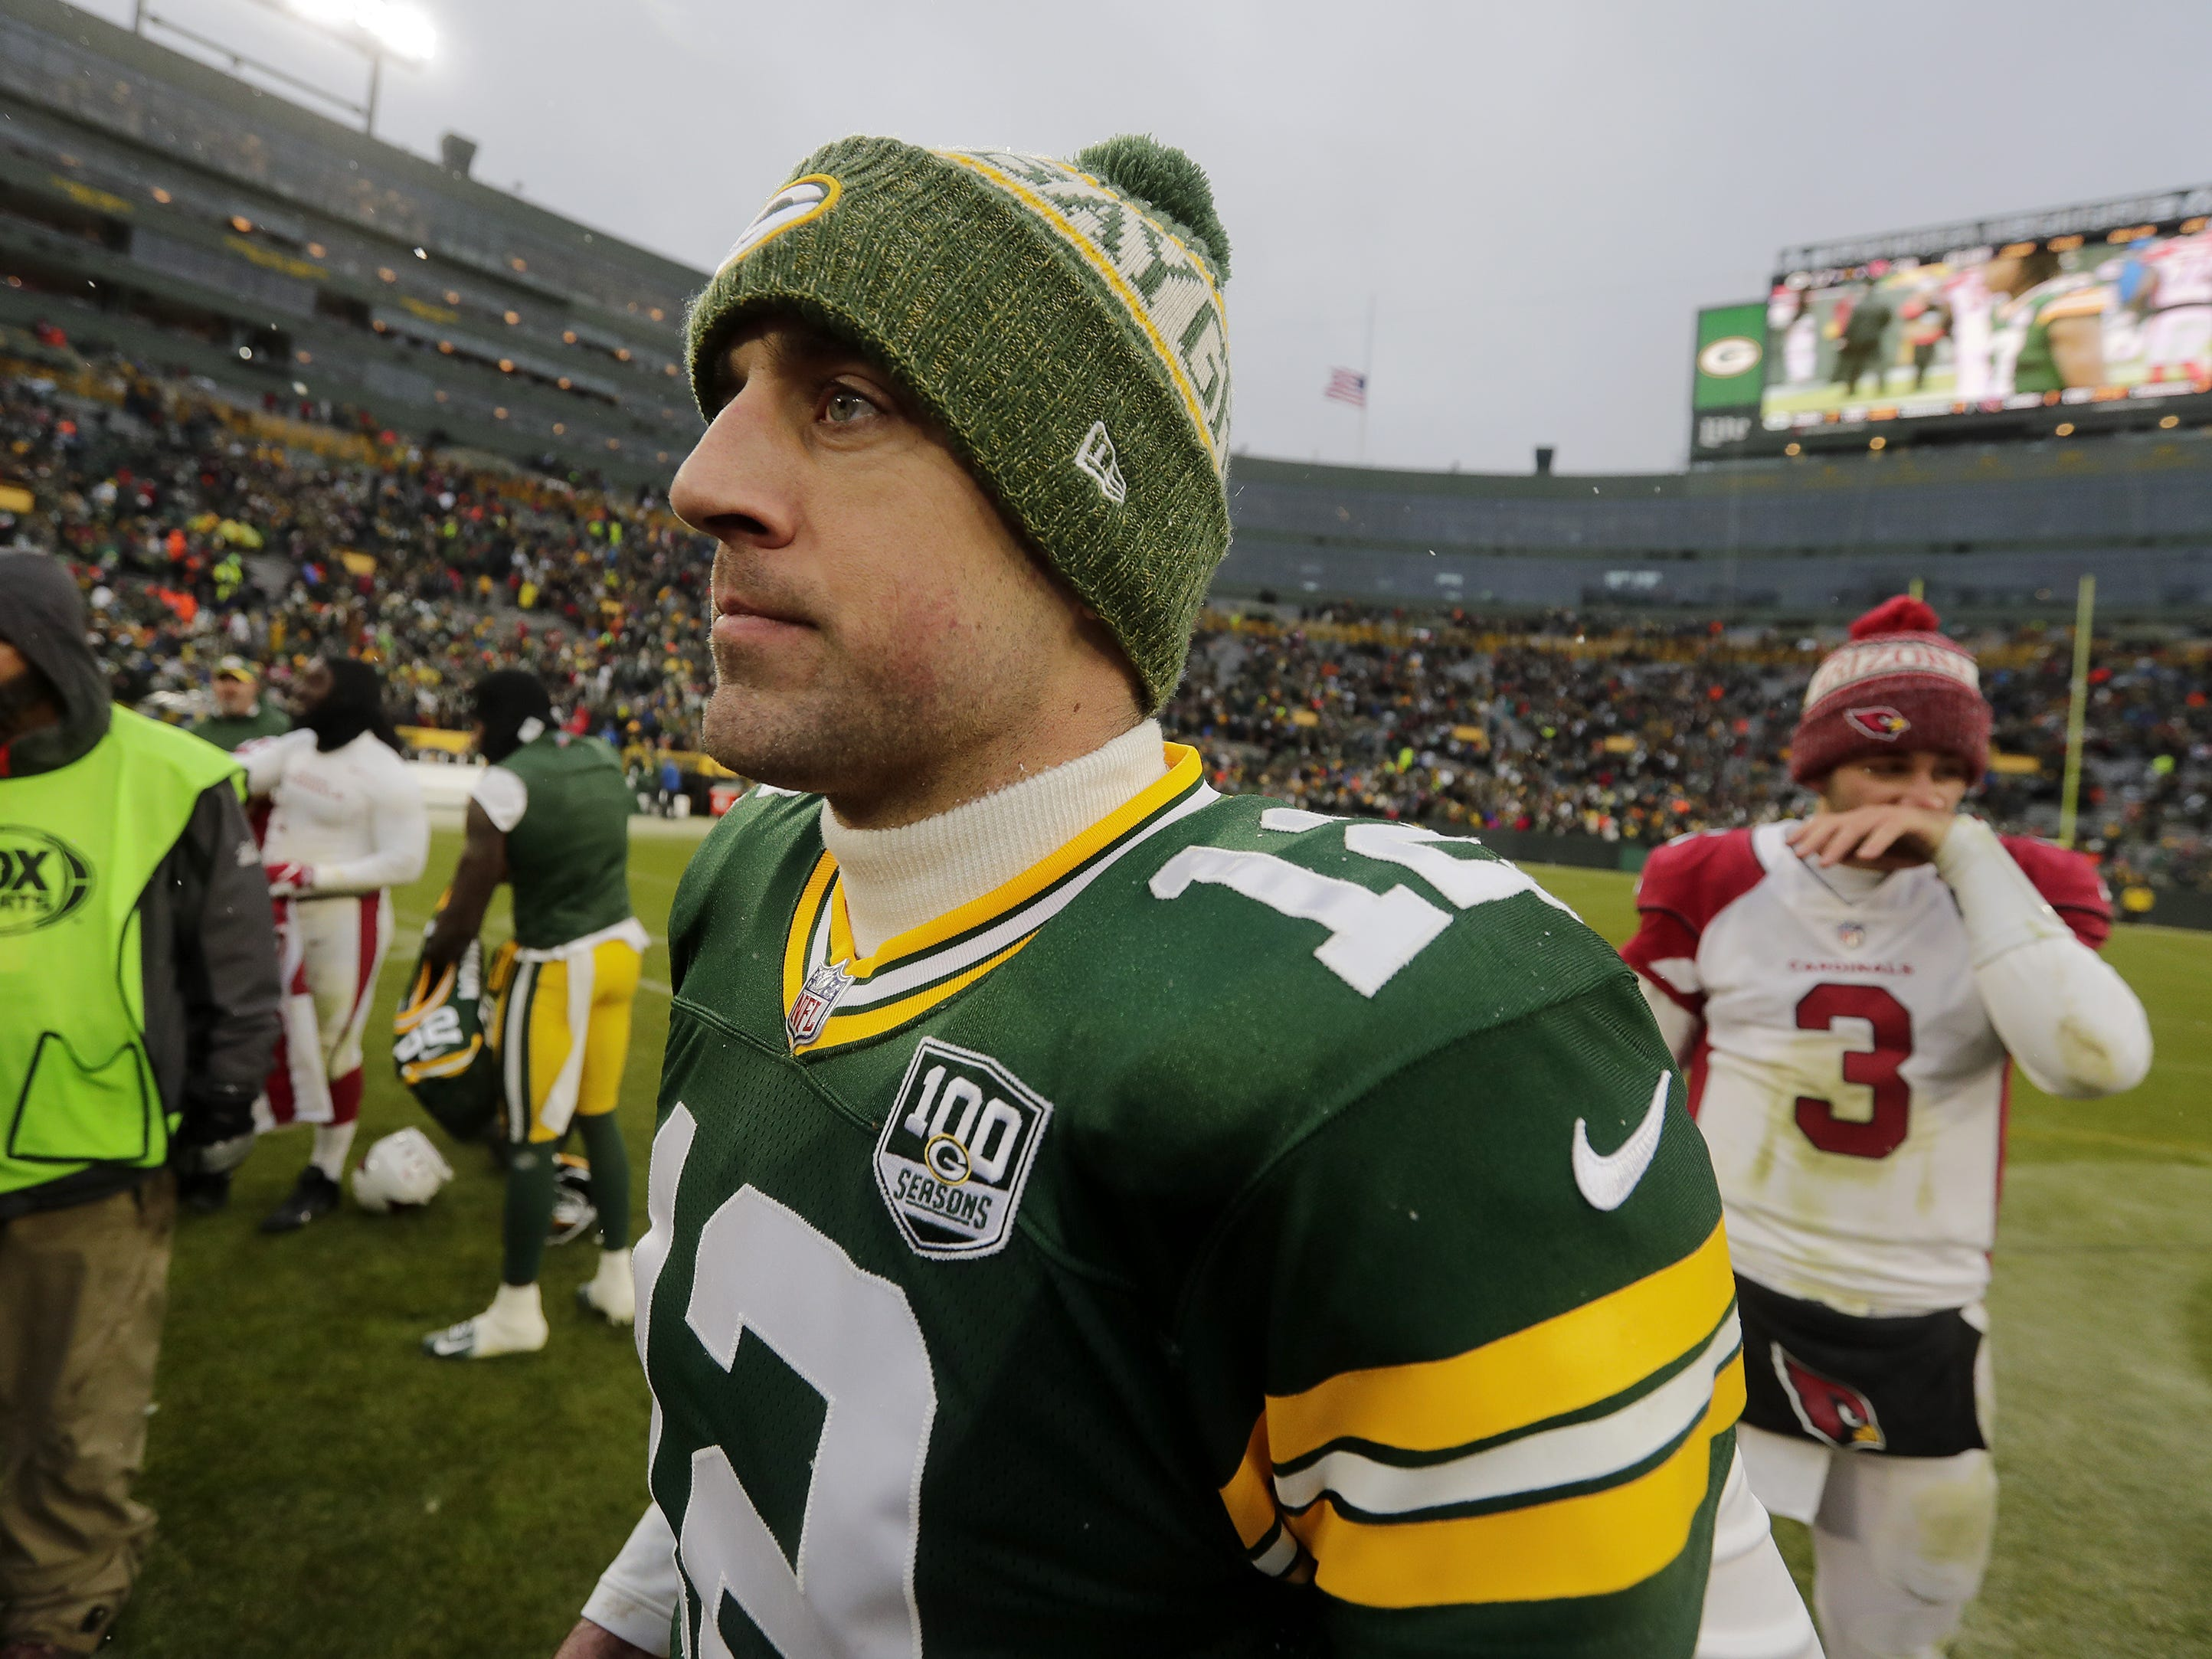 Green Bay Packers quarterback Aaron Rodgers (12) walks off the field after the Packers lost to the Arizona Cardinals at Lambeau Field on Sunday, December 2, 2018 in Green Bay, Wis.